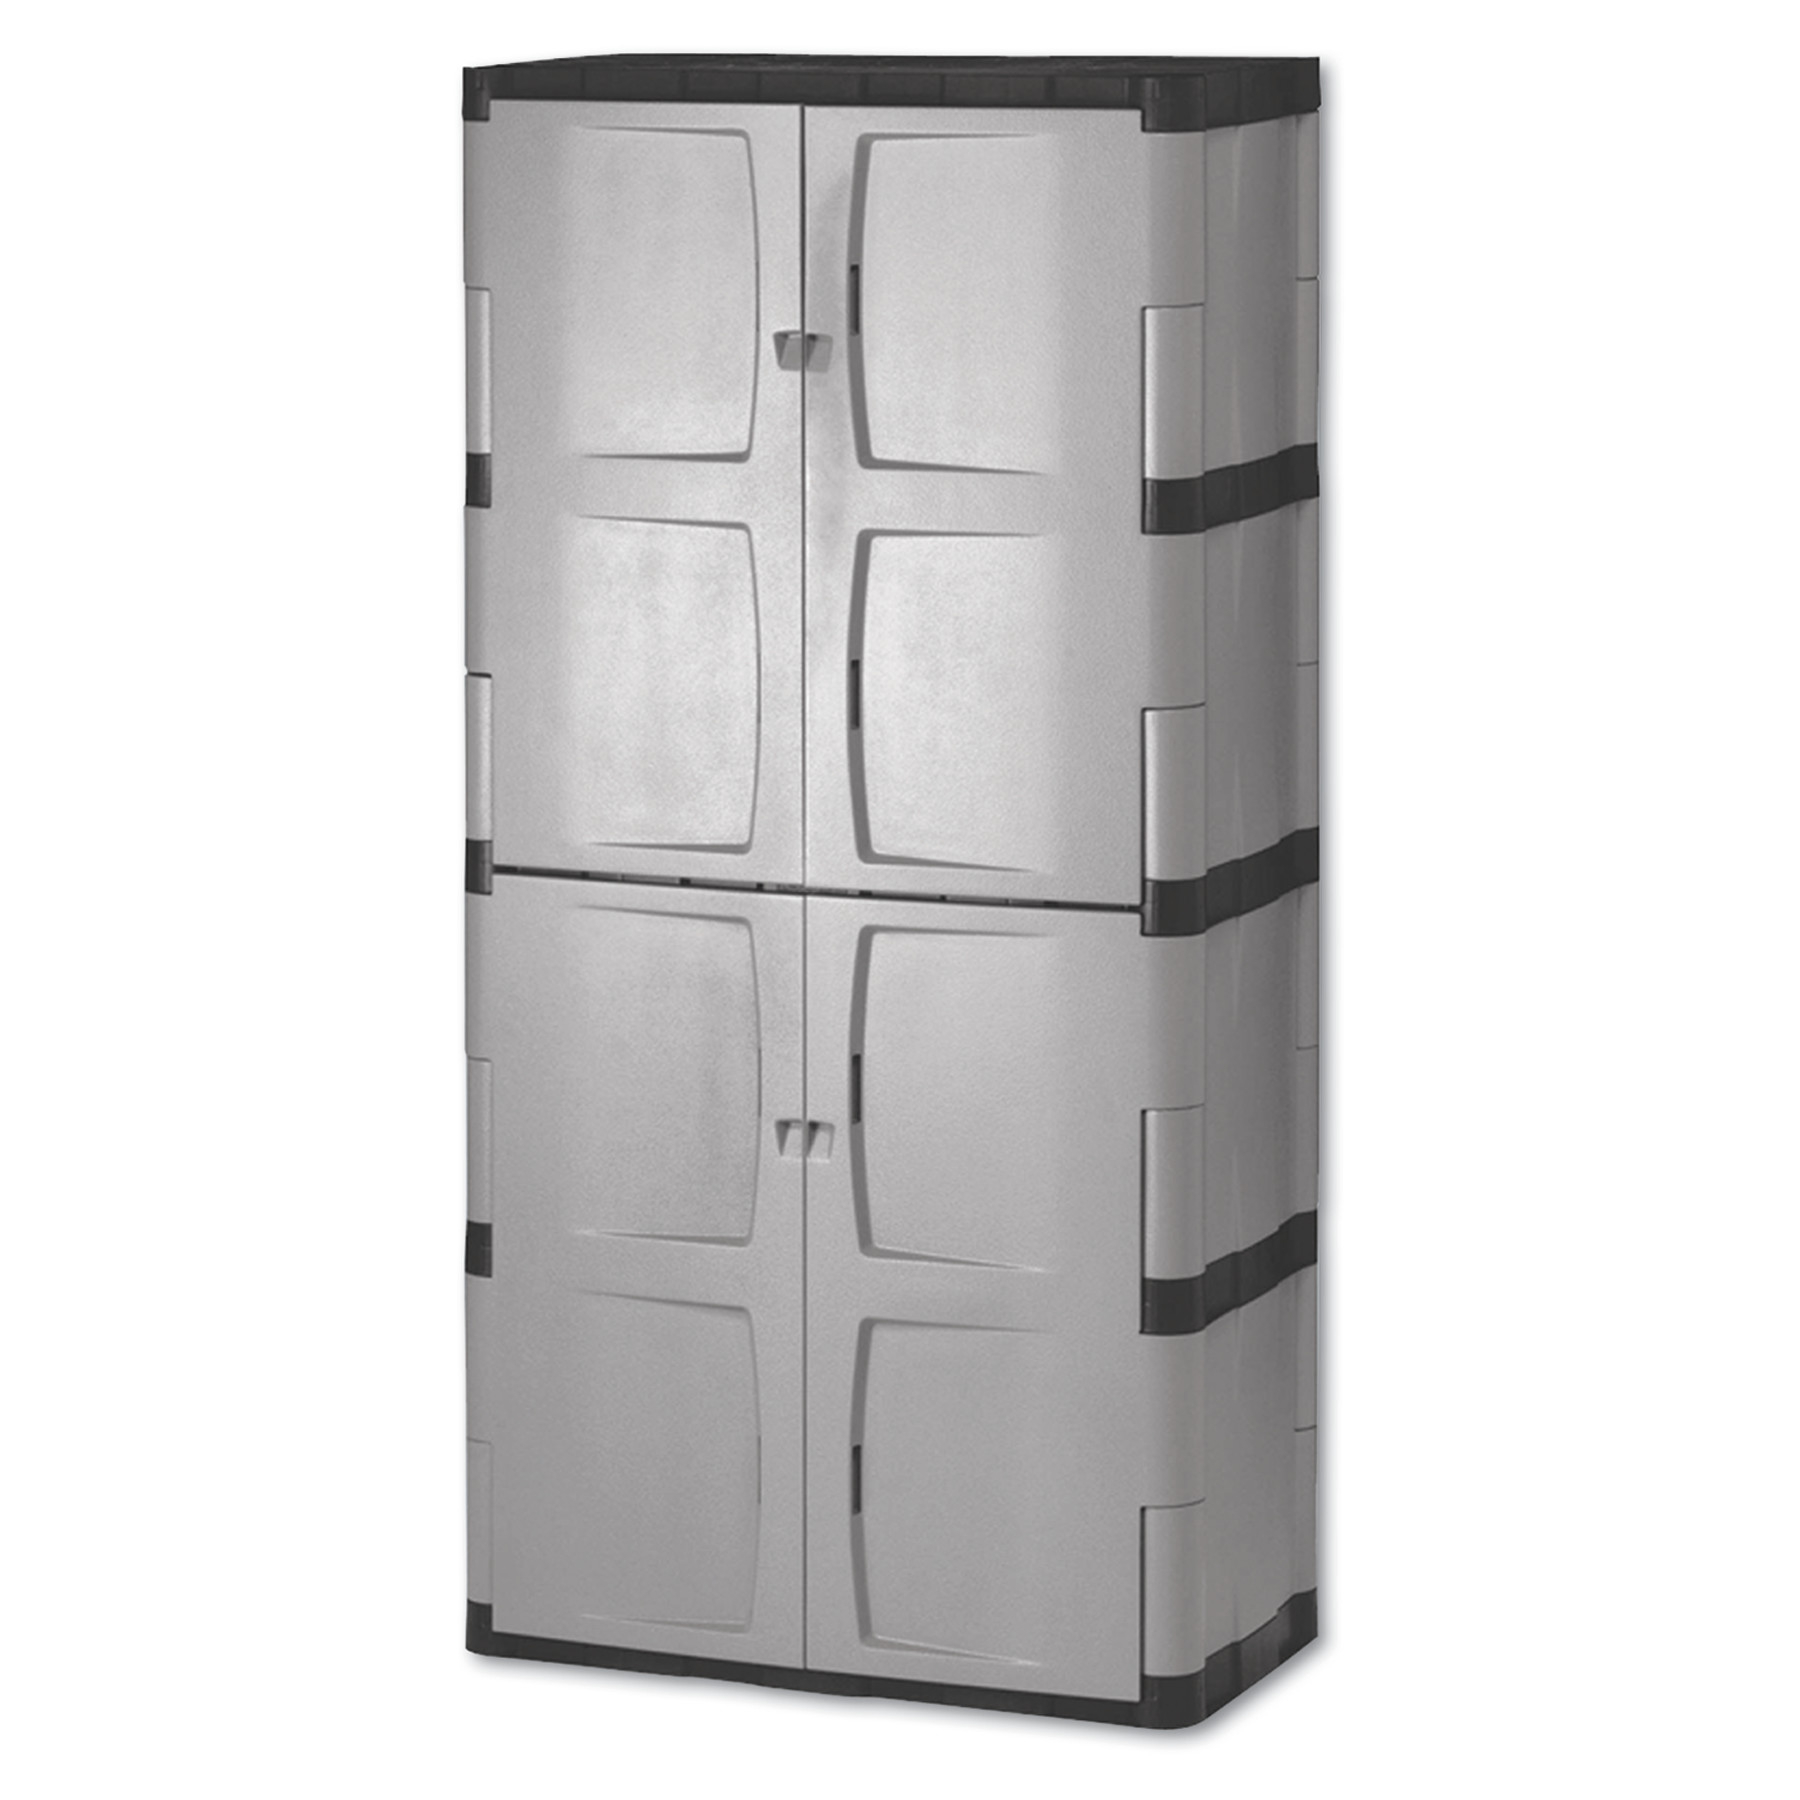 Details About Rubbermaid Double Door Storage Cabinet Base Top 36w X 18d 72h Gray Black